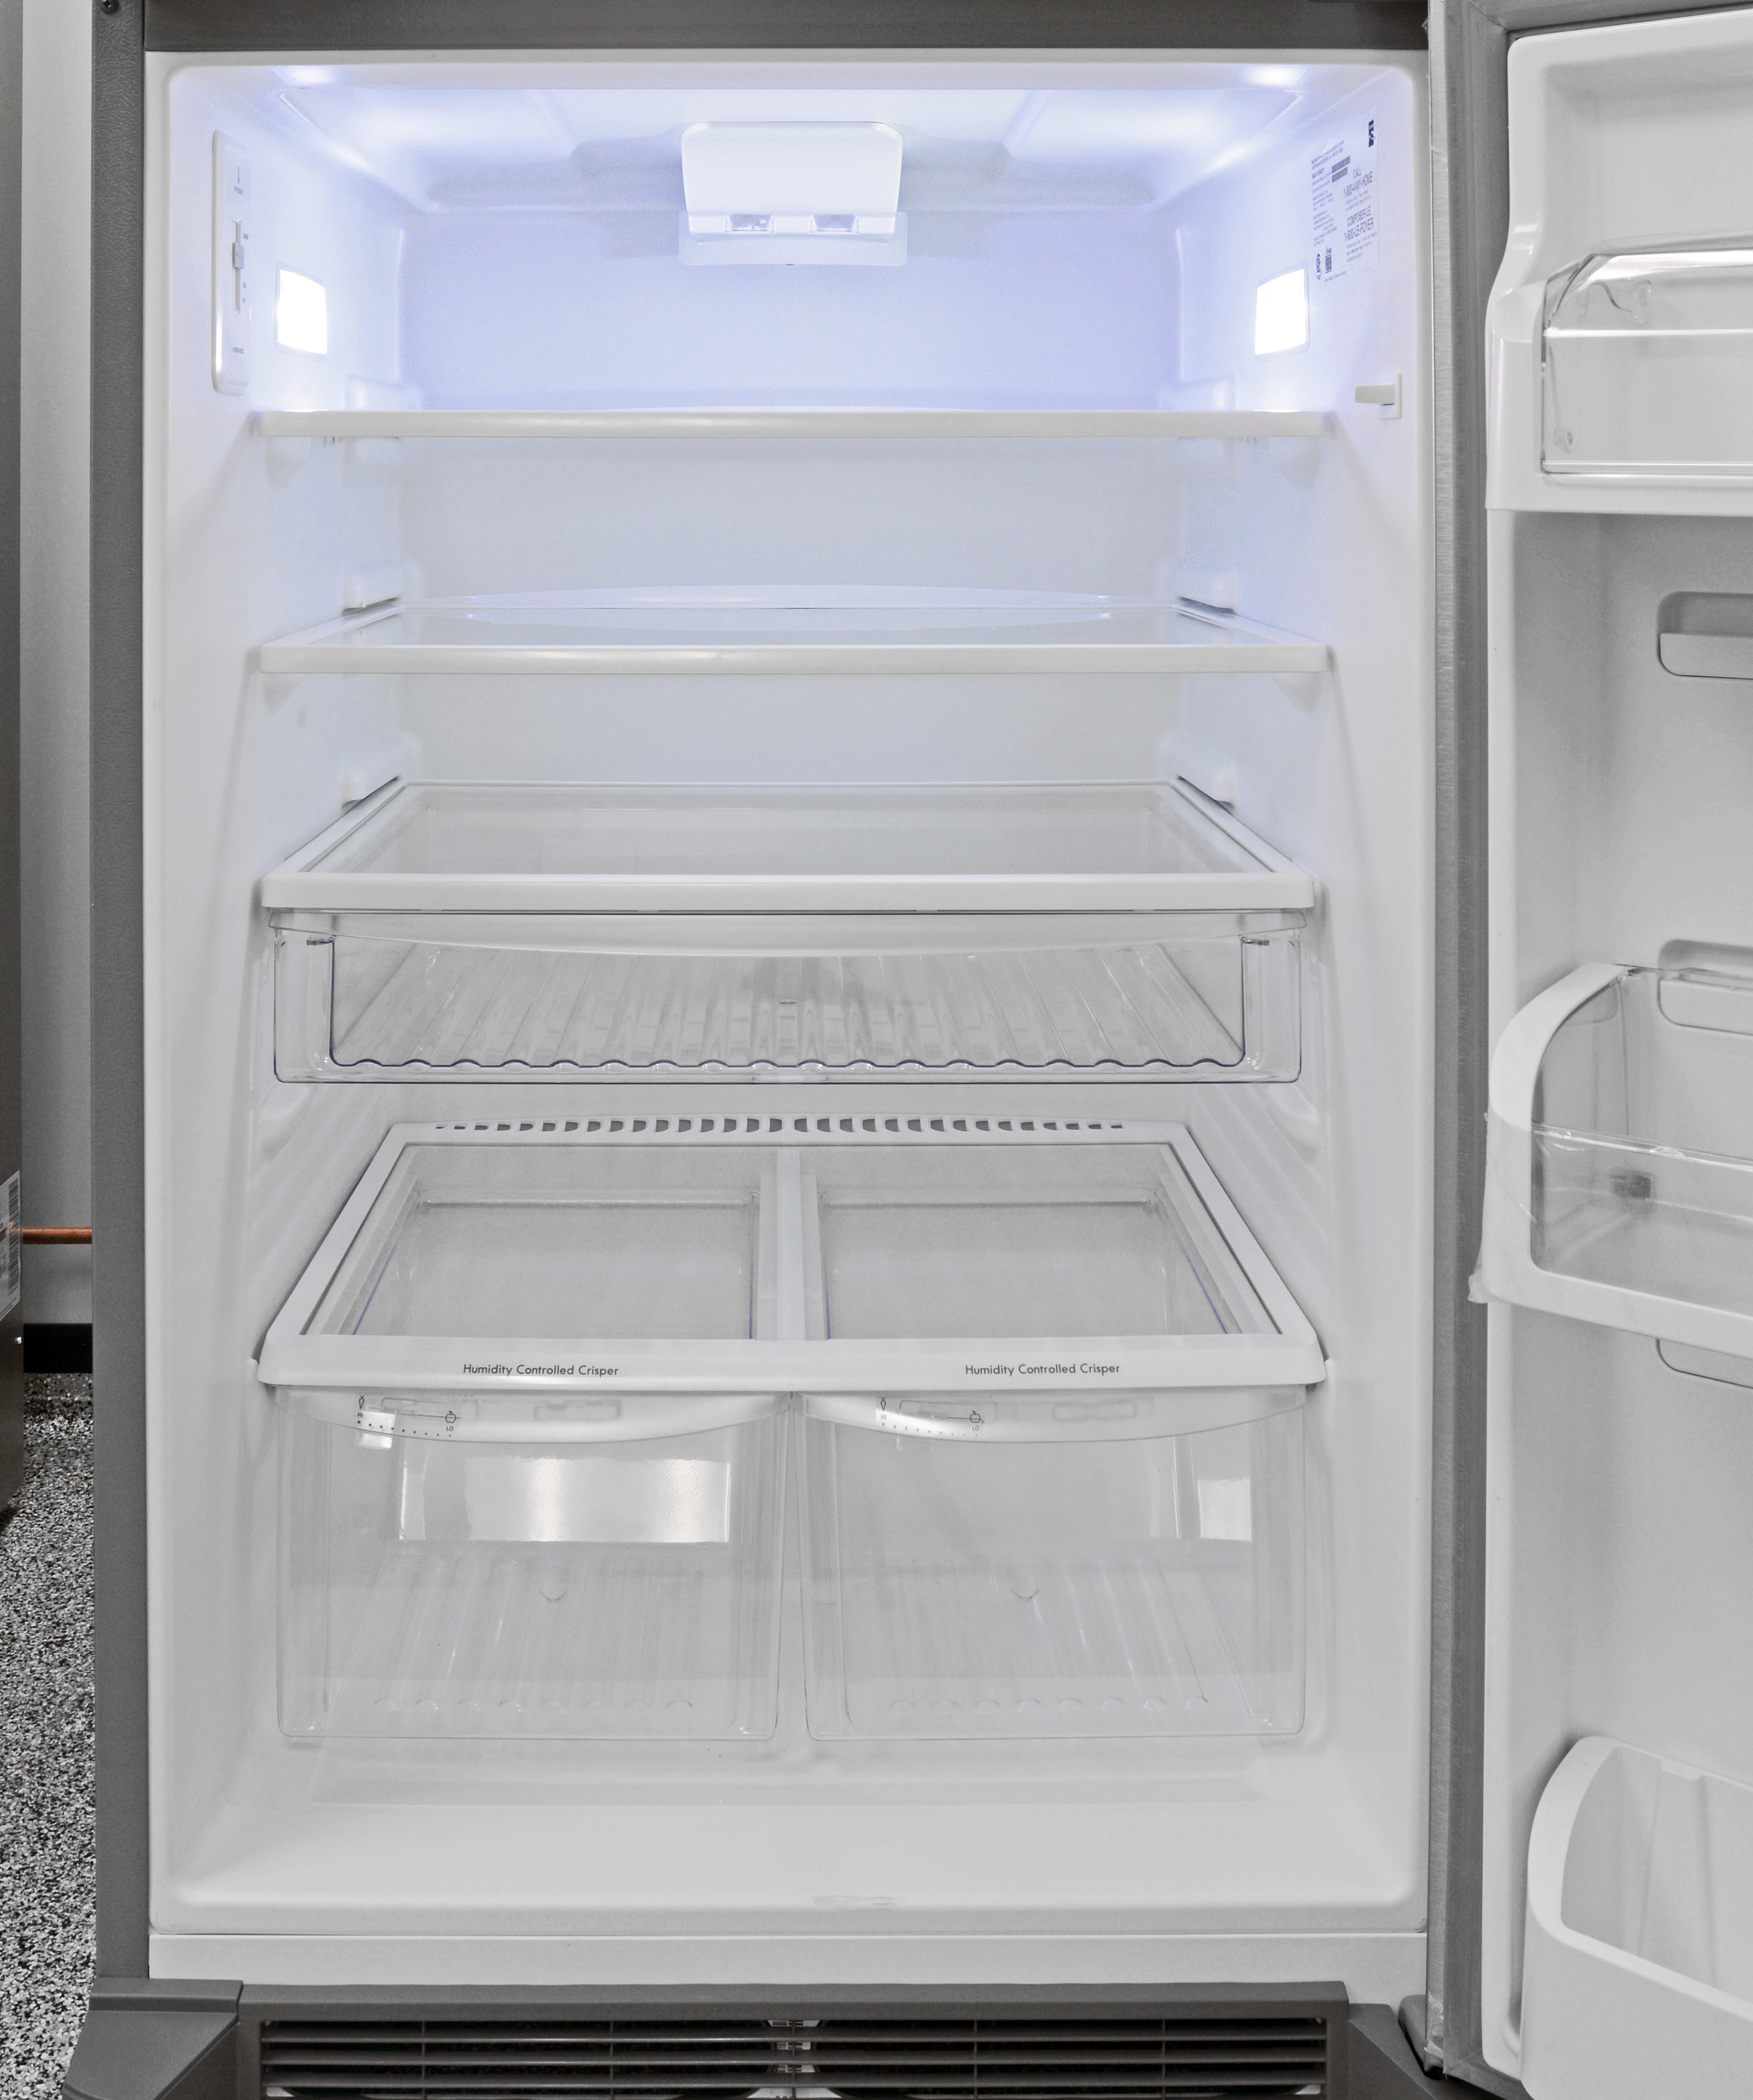 Lots of shelves make the Kenmore 70623 easy to organize, but it runs the risk of feeling cramped.